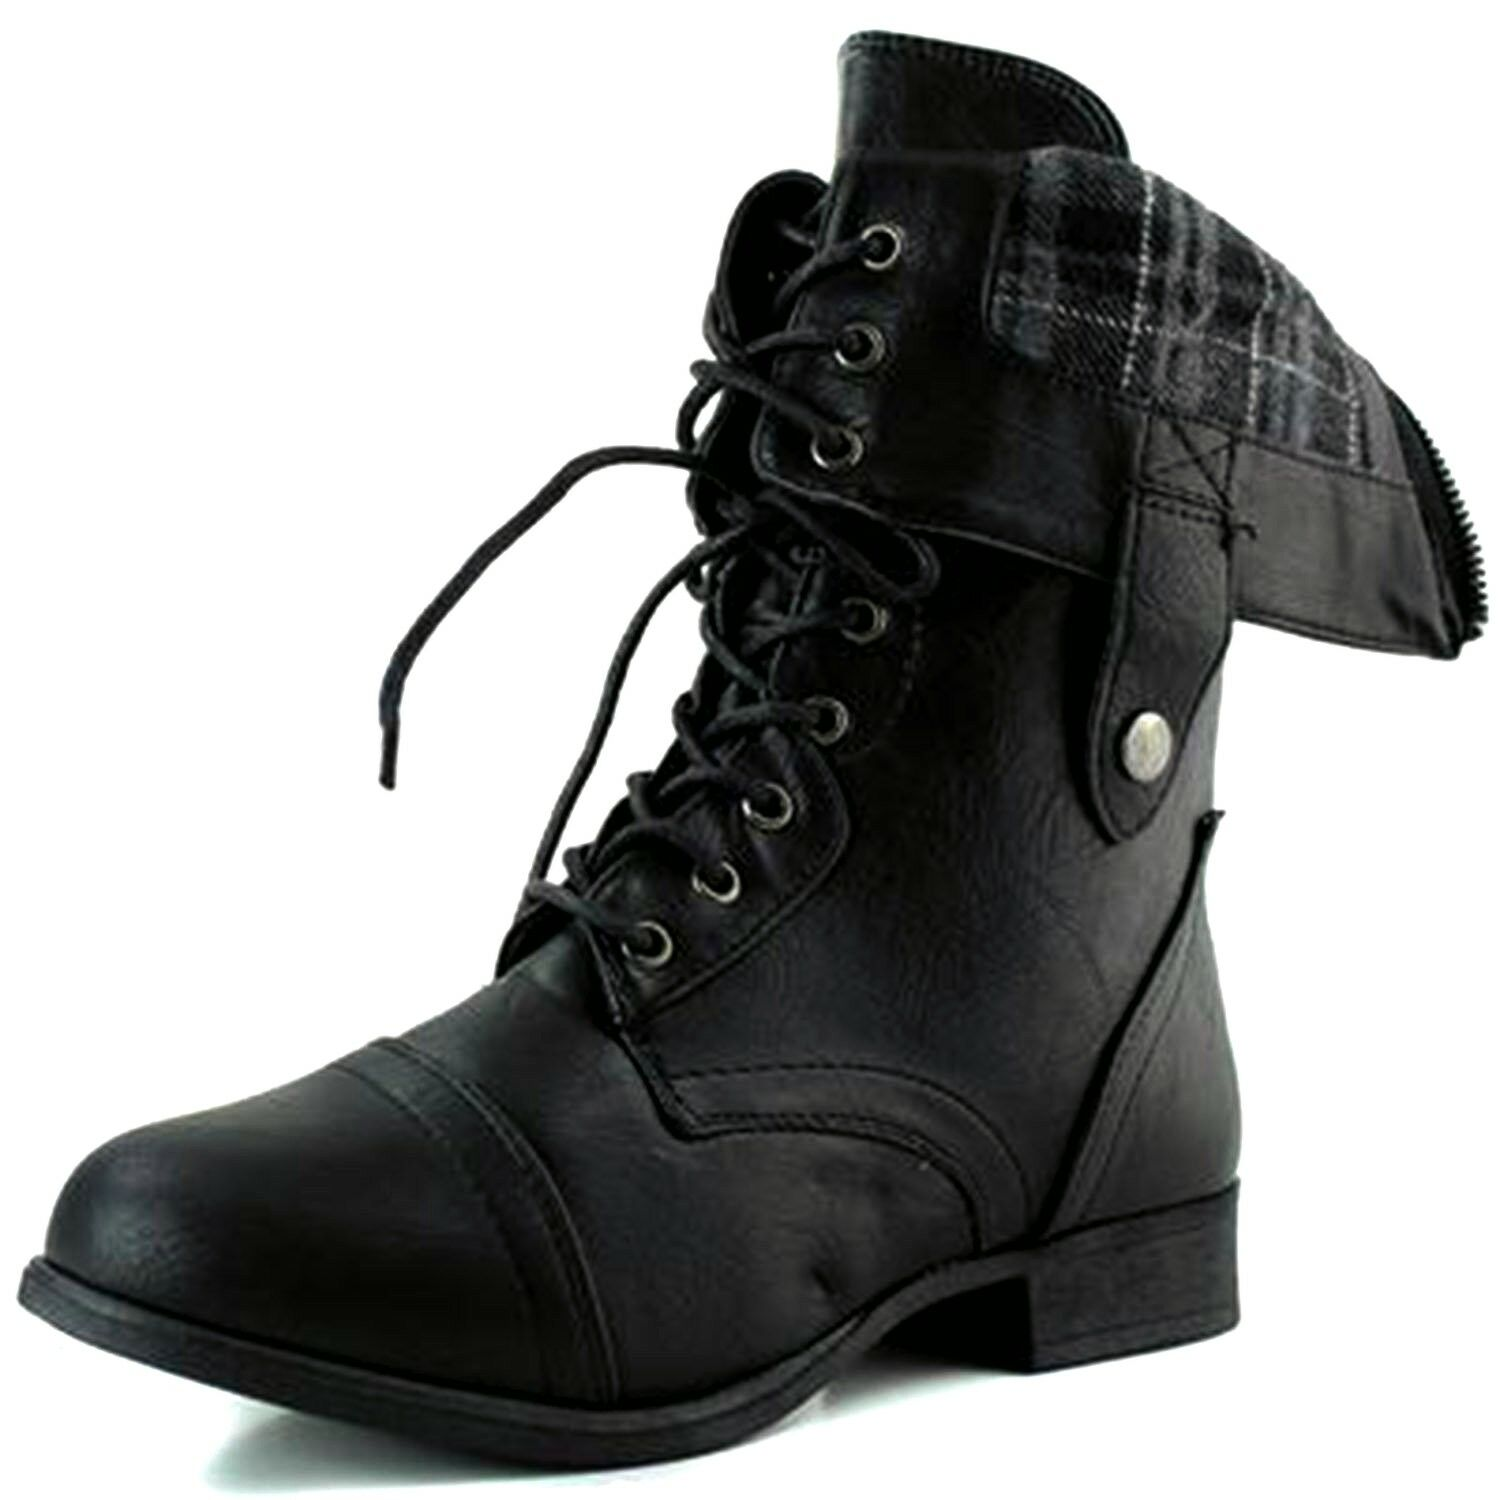 Top Modal SR-01 Women's Mid Calf Low Heel Combat Military La